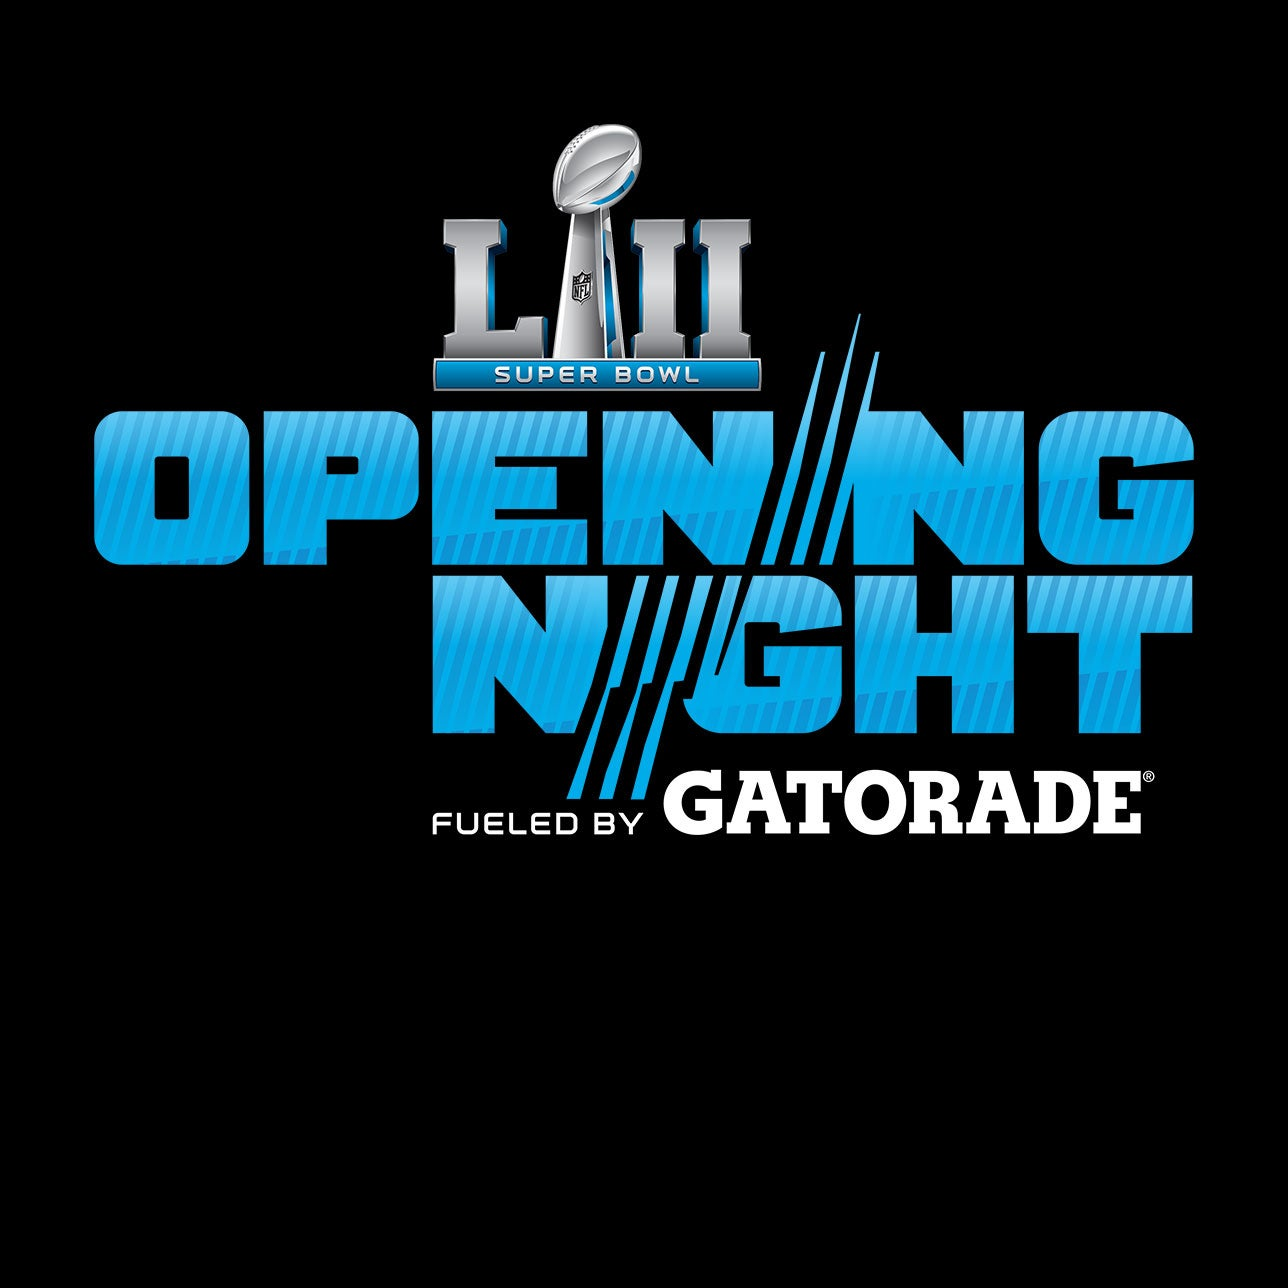 Super Bowl Opening Night Fueled by Gatorade